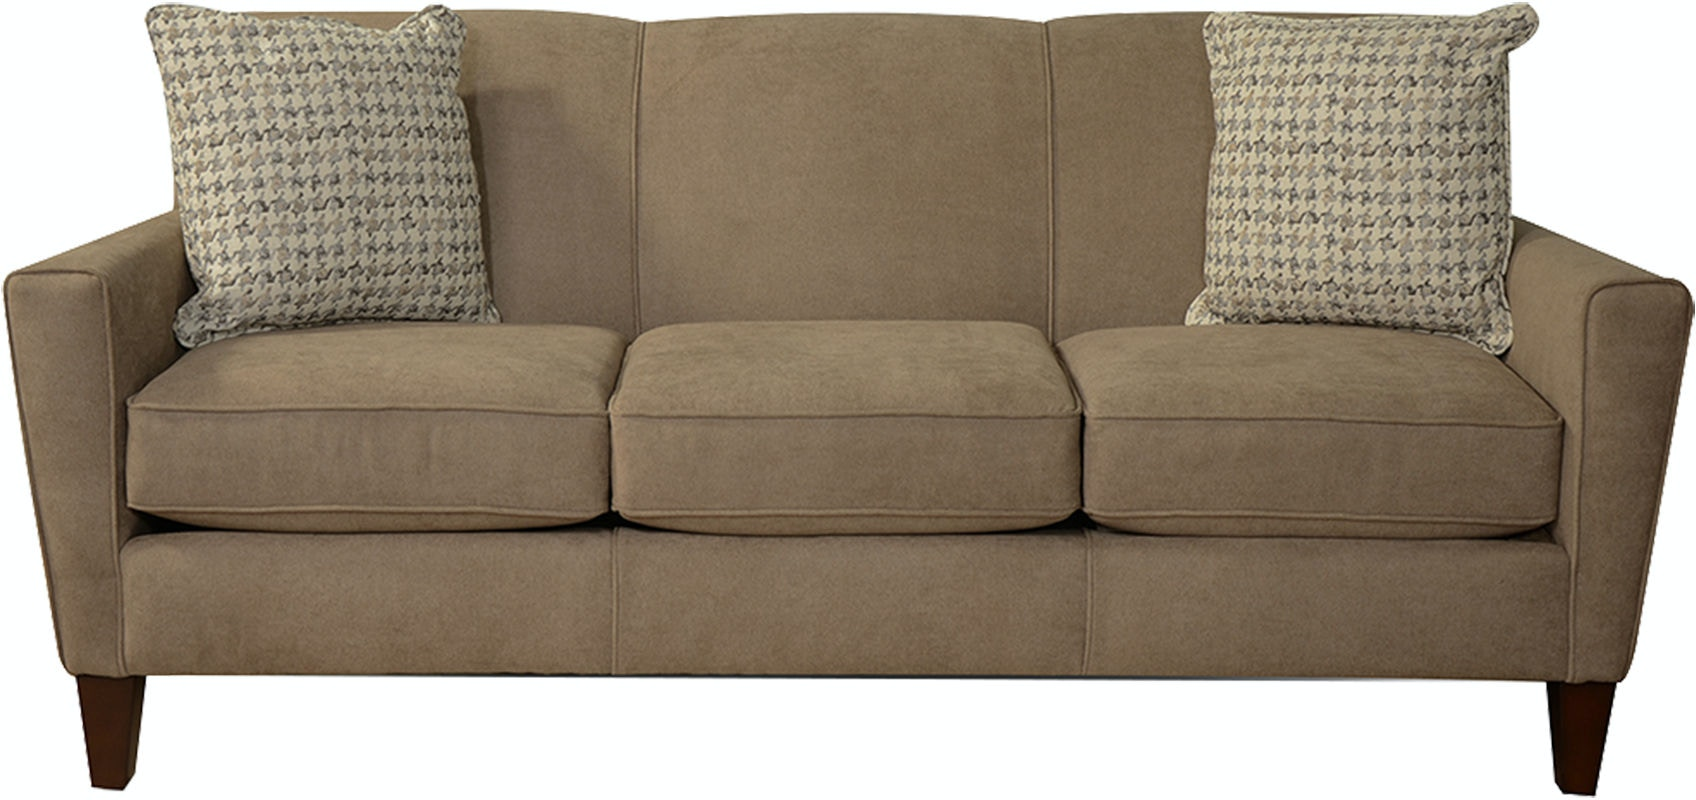 England Living Room Collegedale Sofa 6205 Seaside